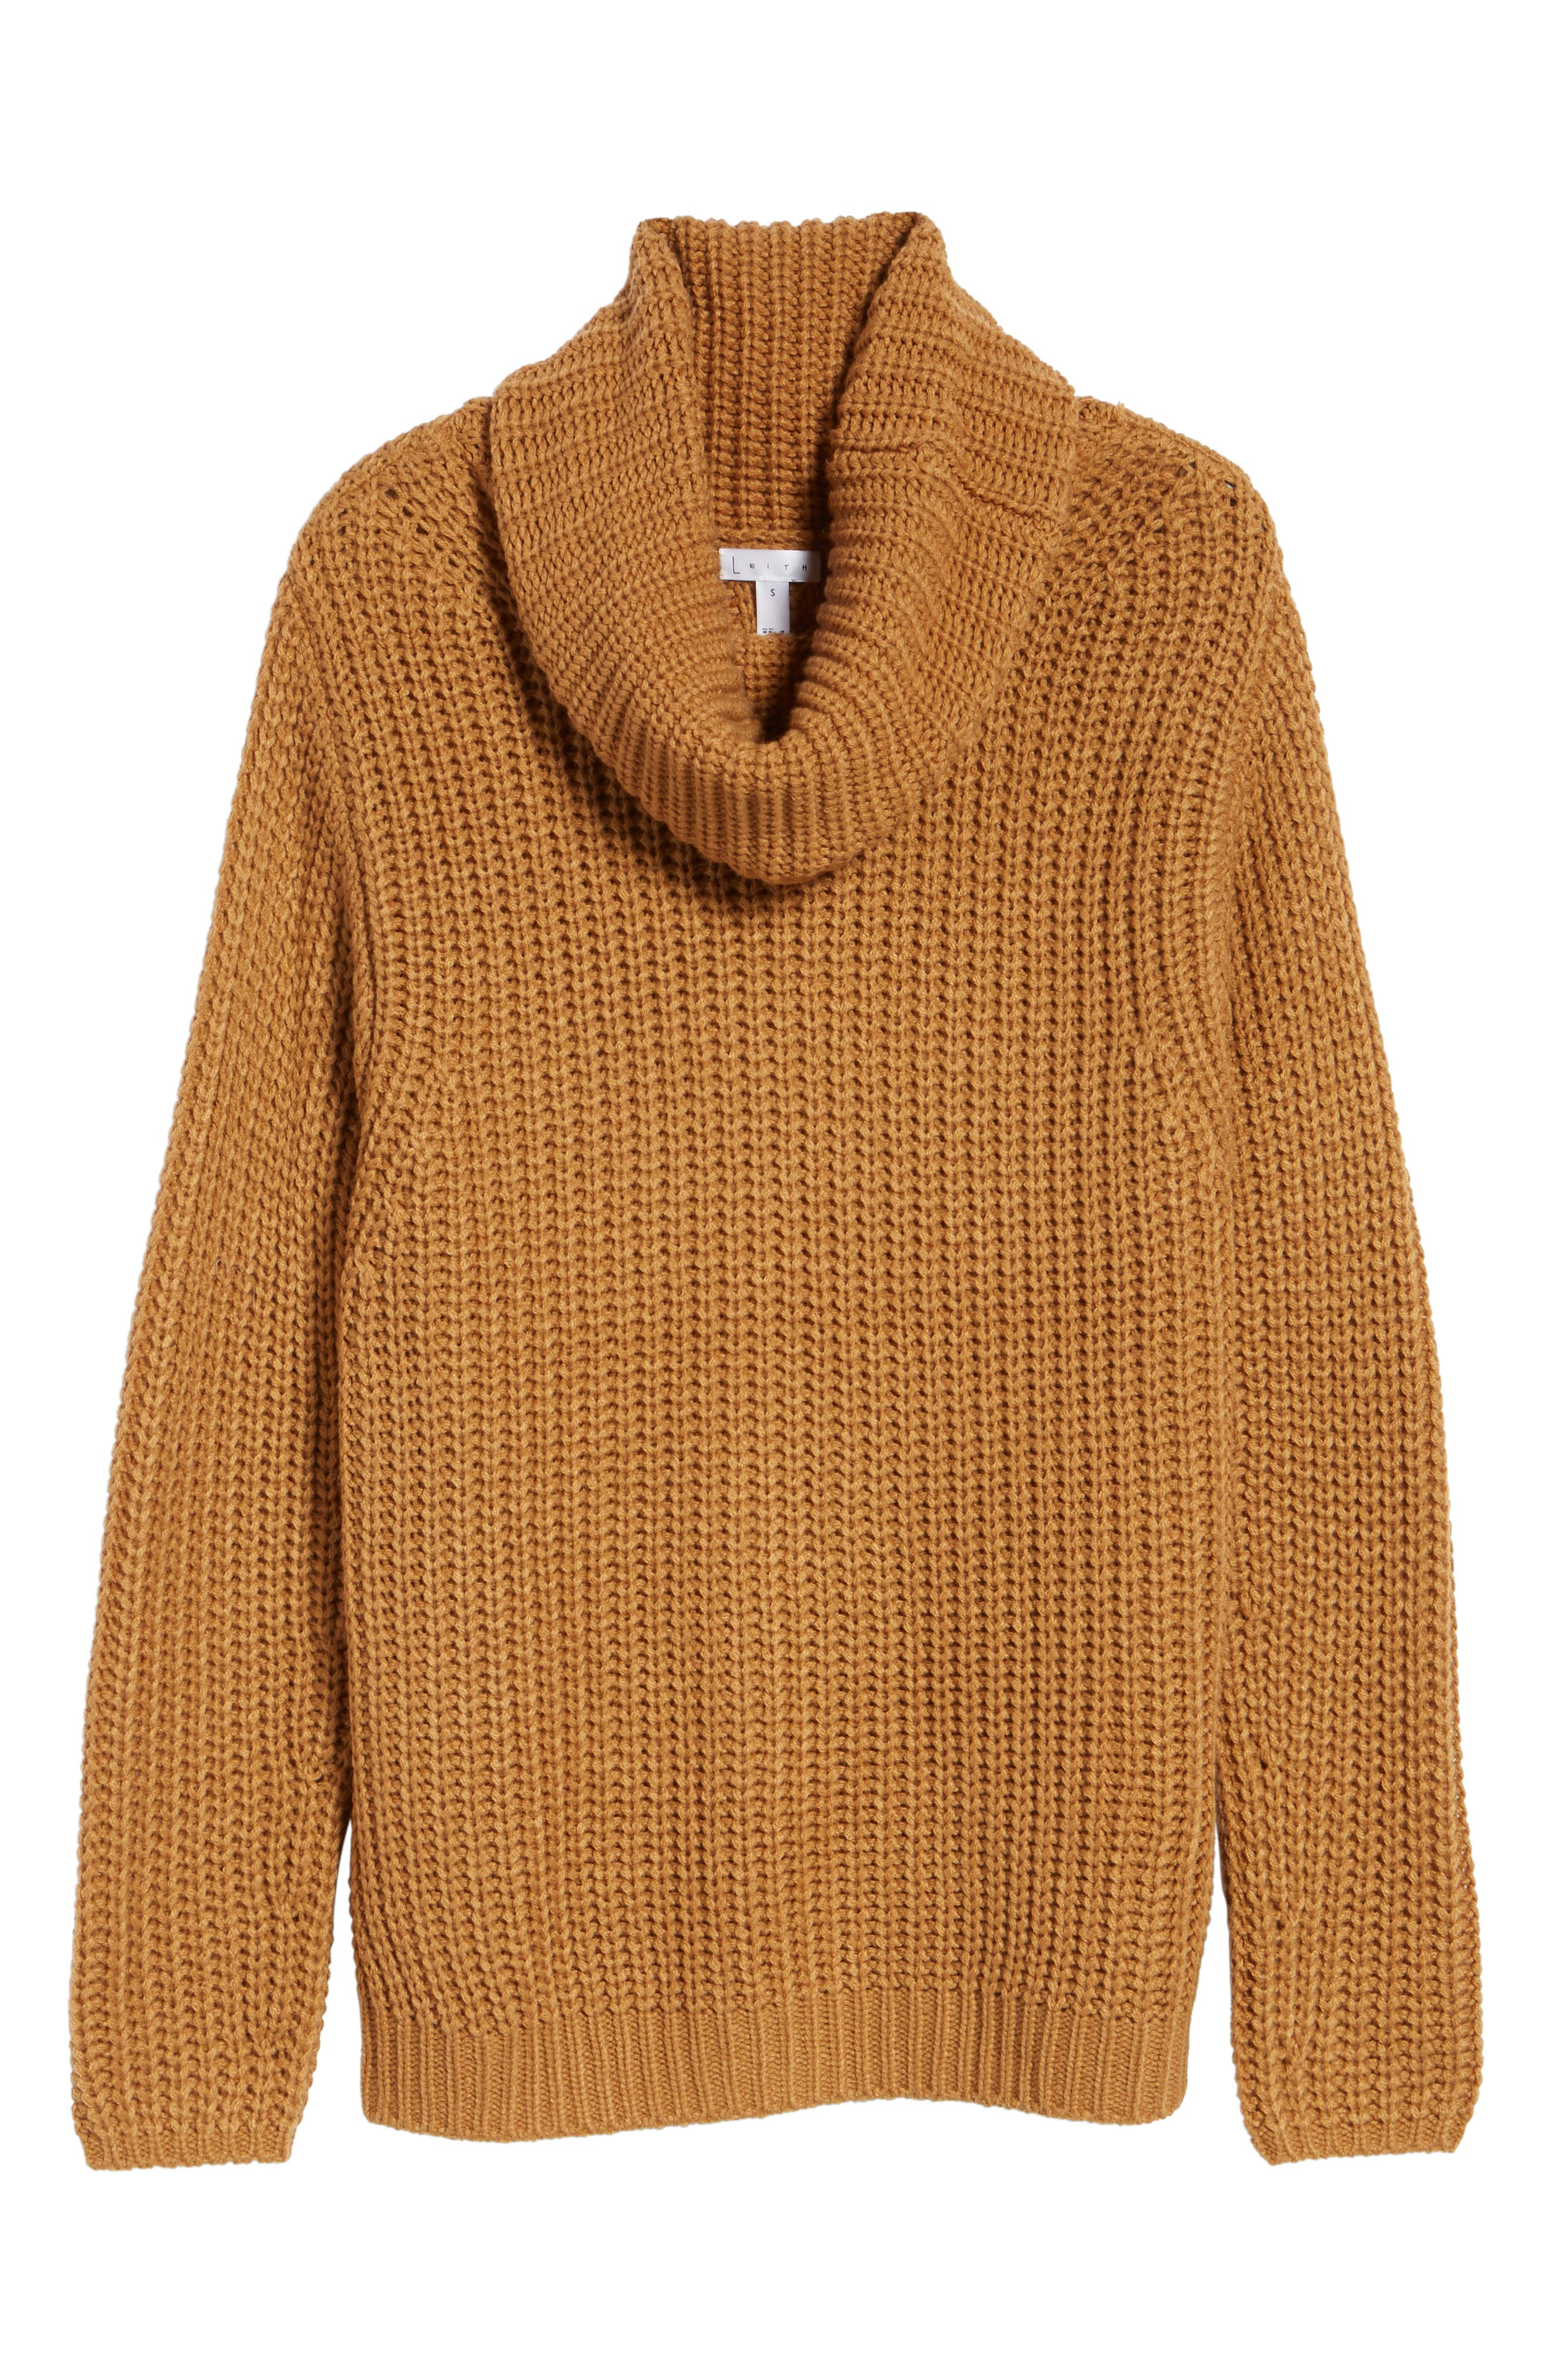 LEITH, Oversize Turtleneck Sweater, Alternate thumbnail 6, color, 235